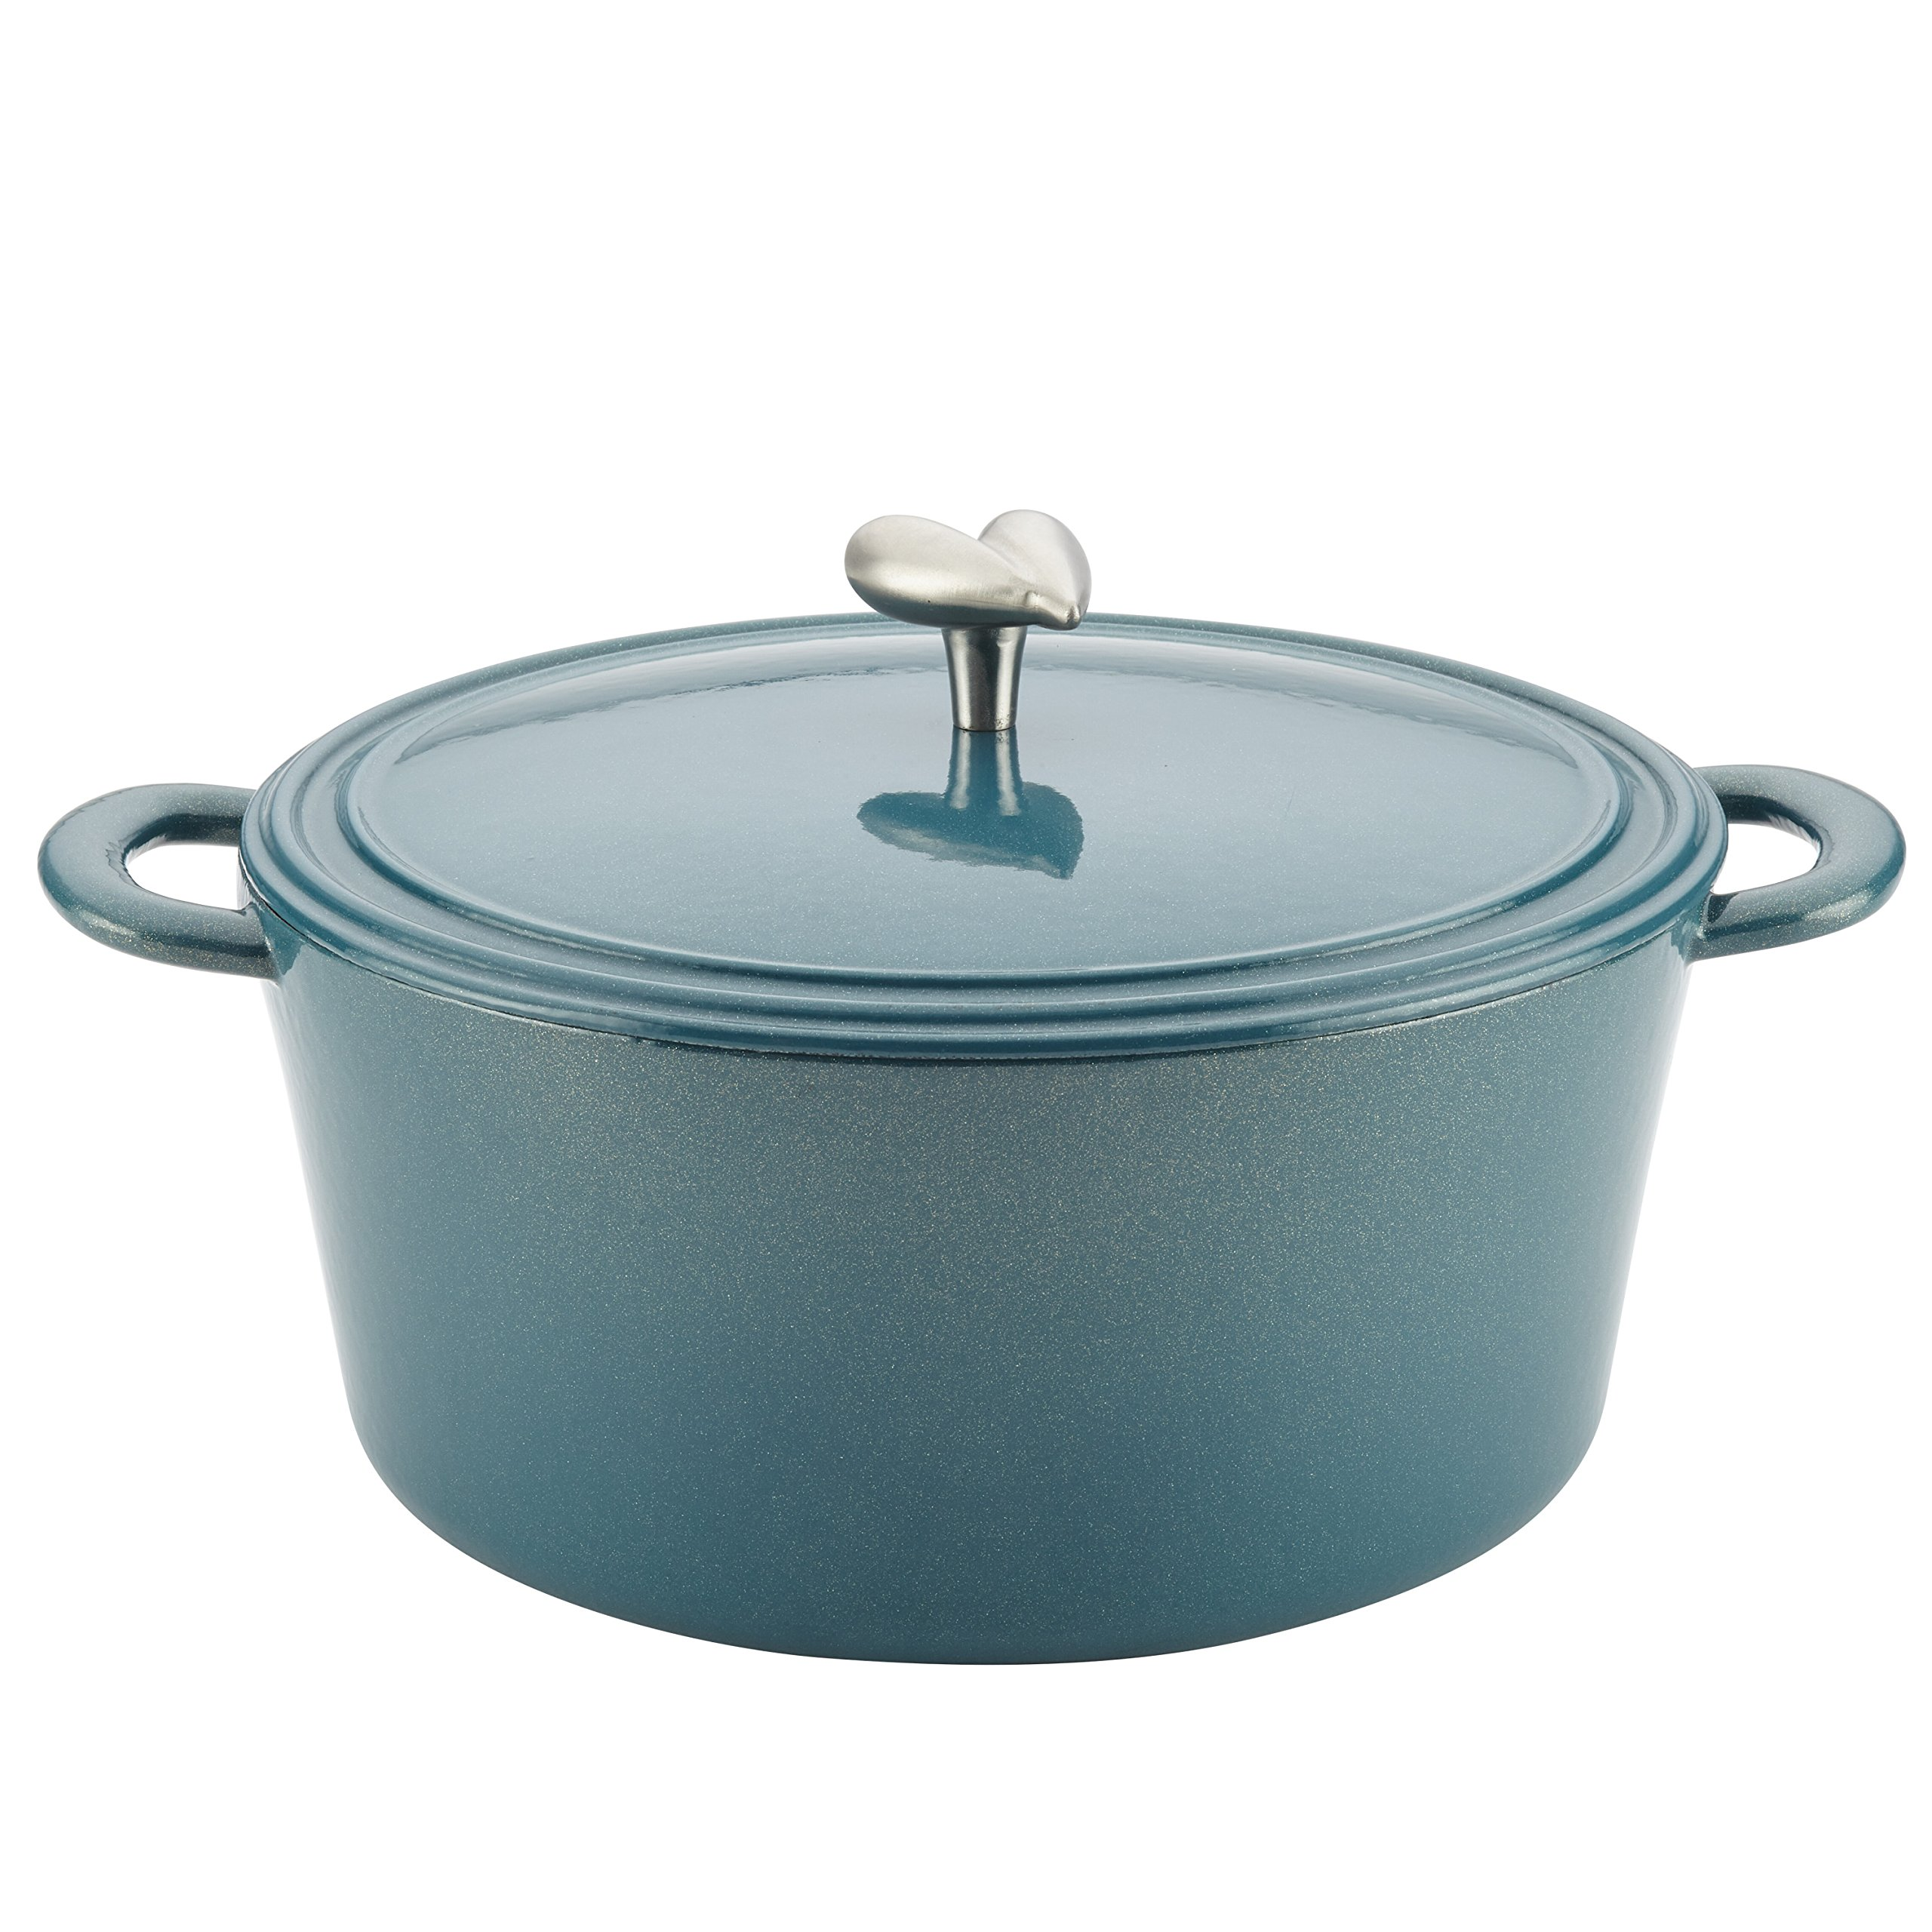 Ayesha Collection Cast Iron Enamel Covered Dutch Oven, 6-Quart, Twilight Teal